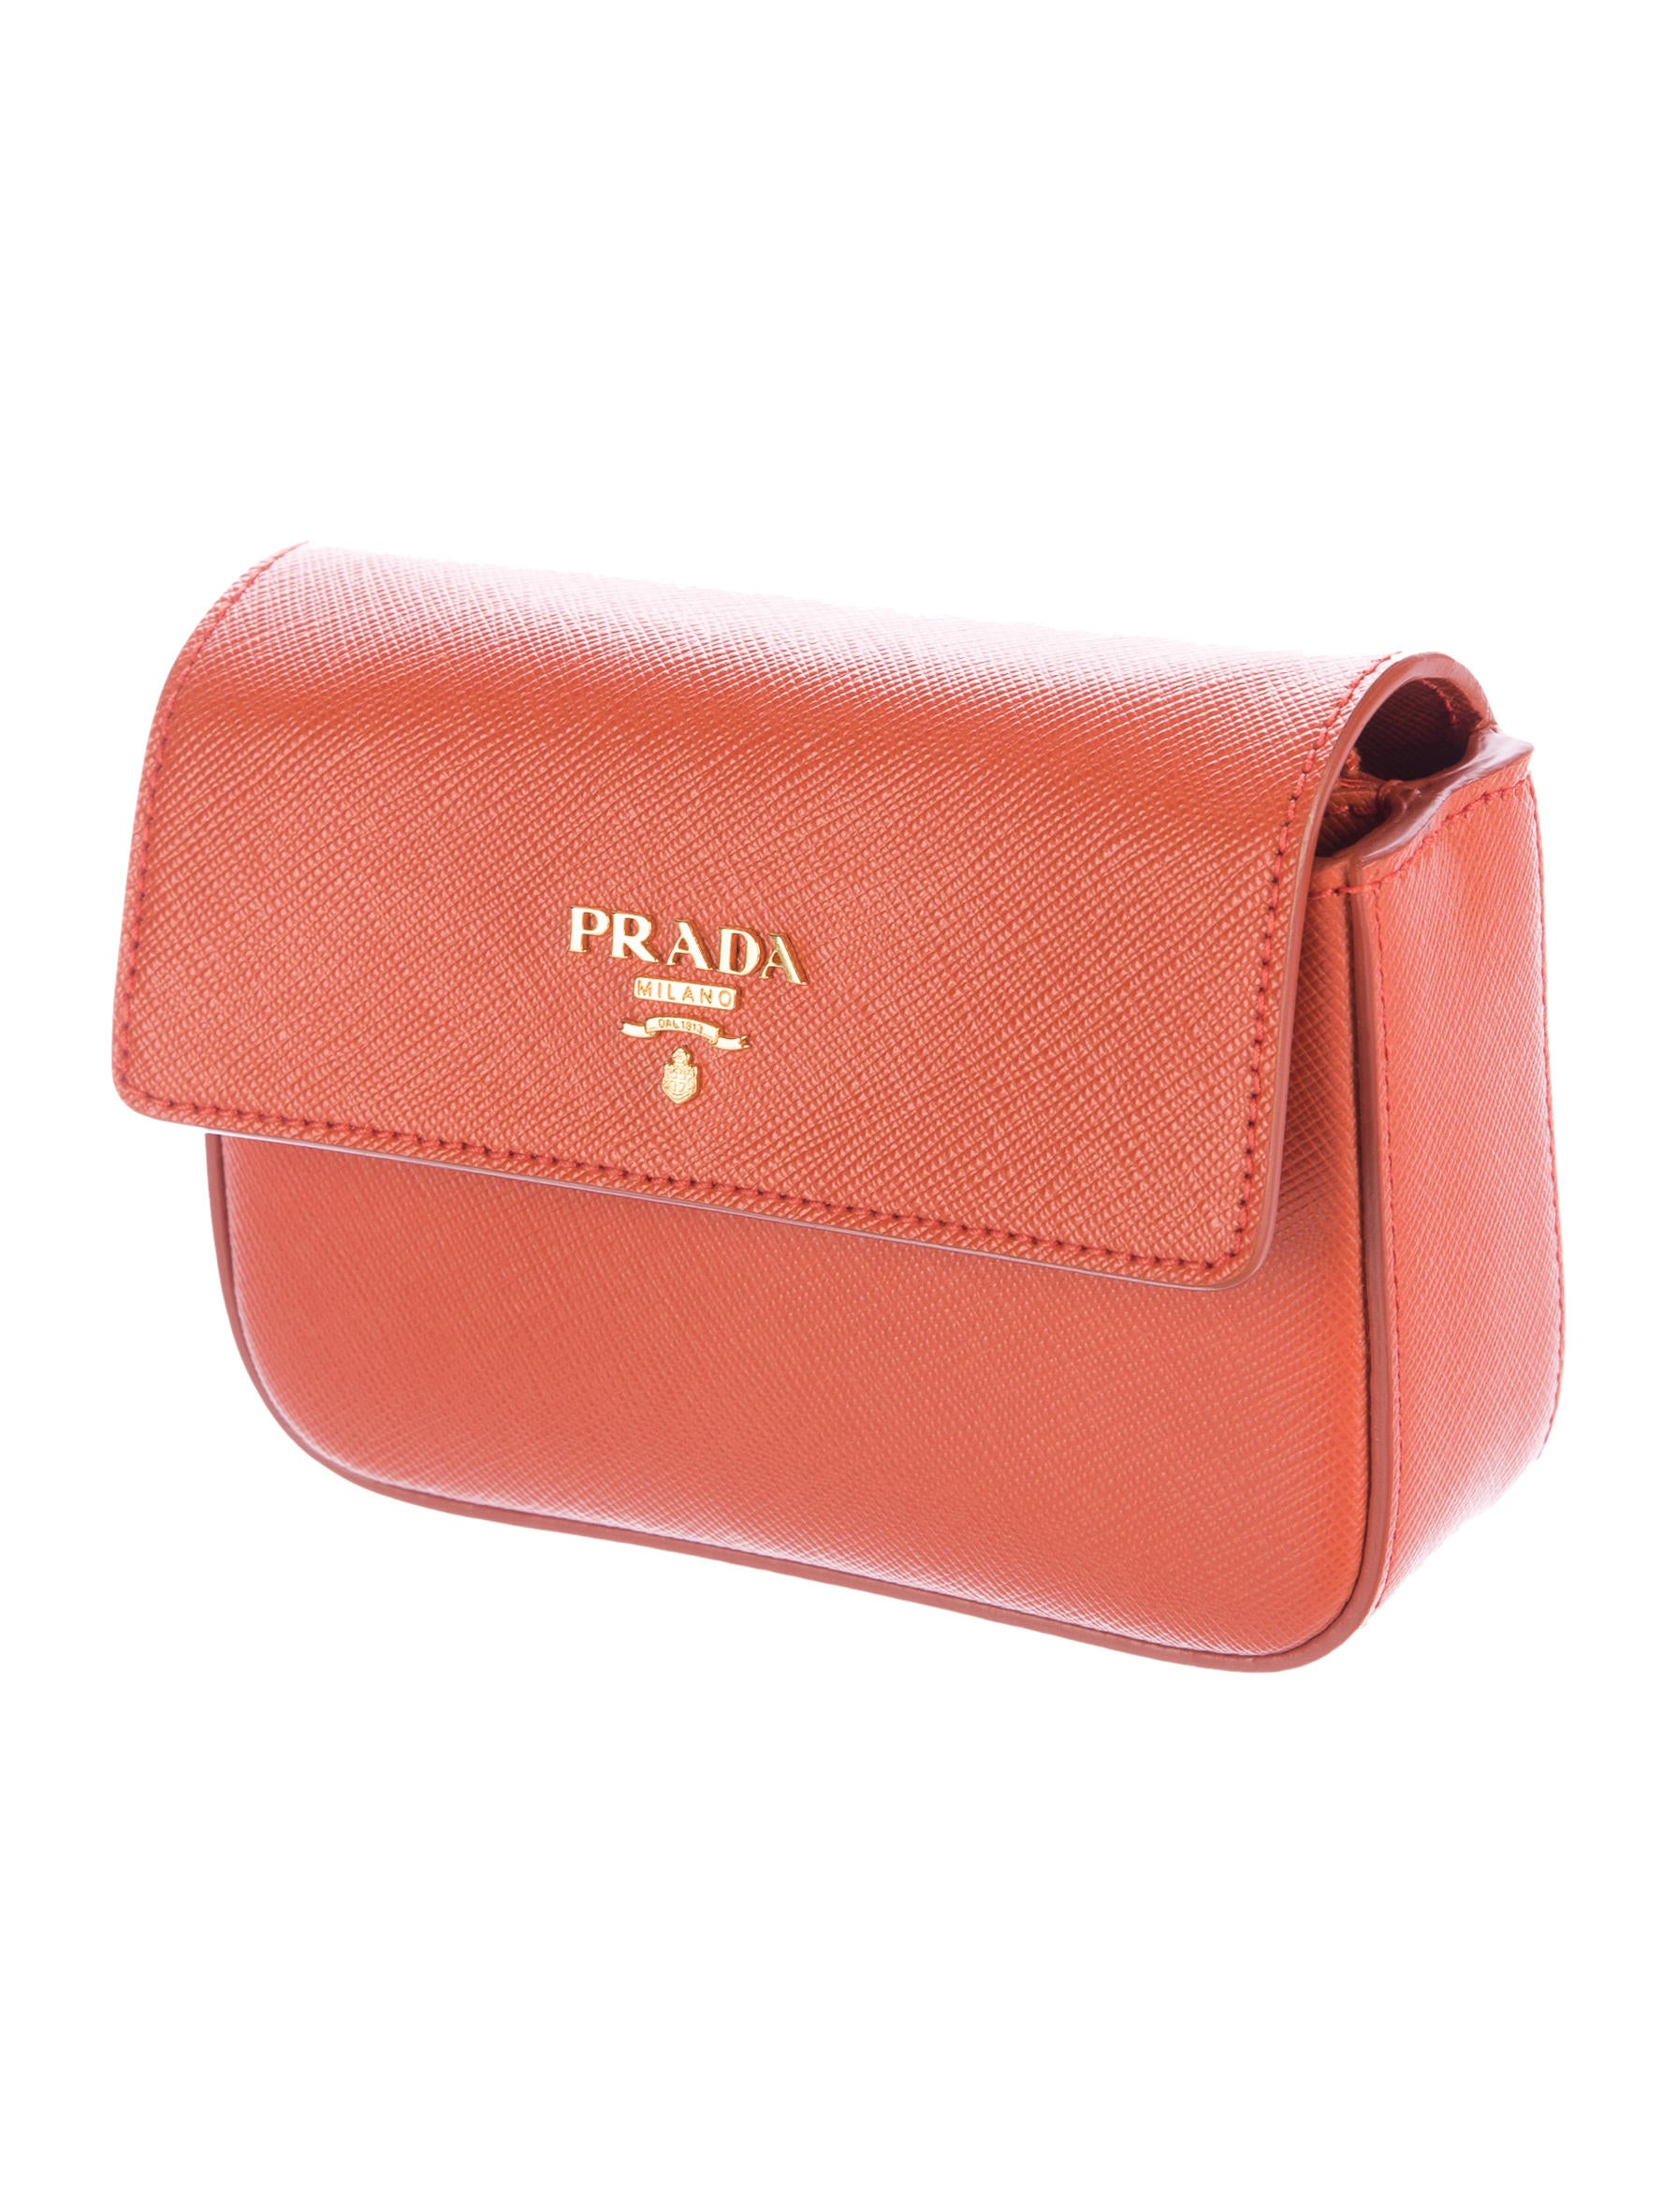 a3be493adf1ec1 Clutch Purse Prada | Stanford Center for Opportunity Policy in Education